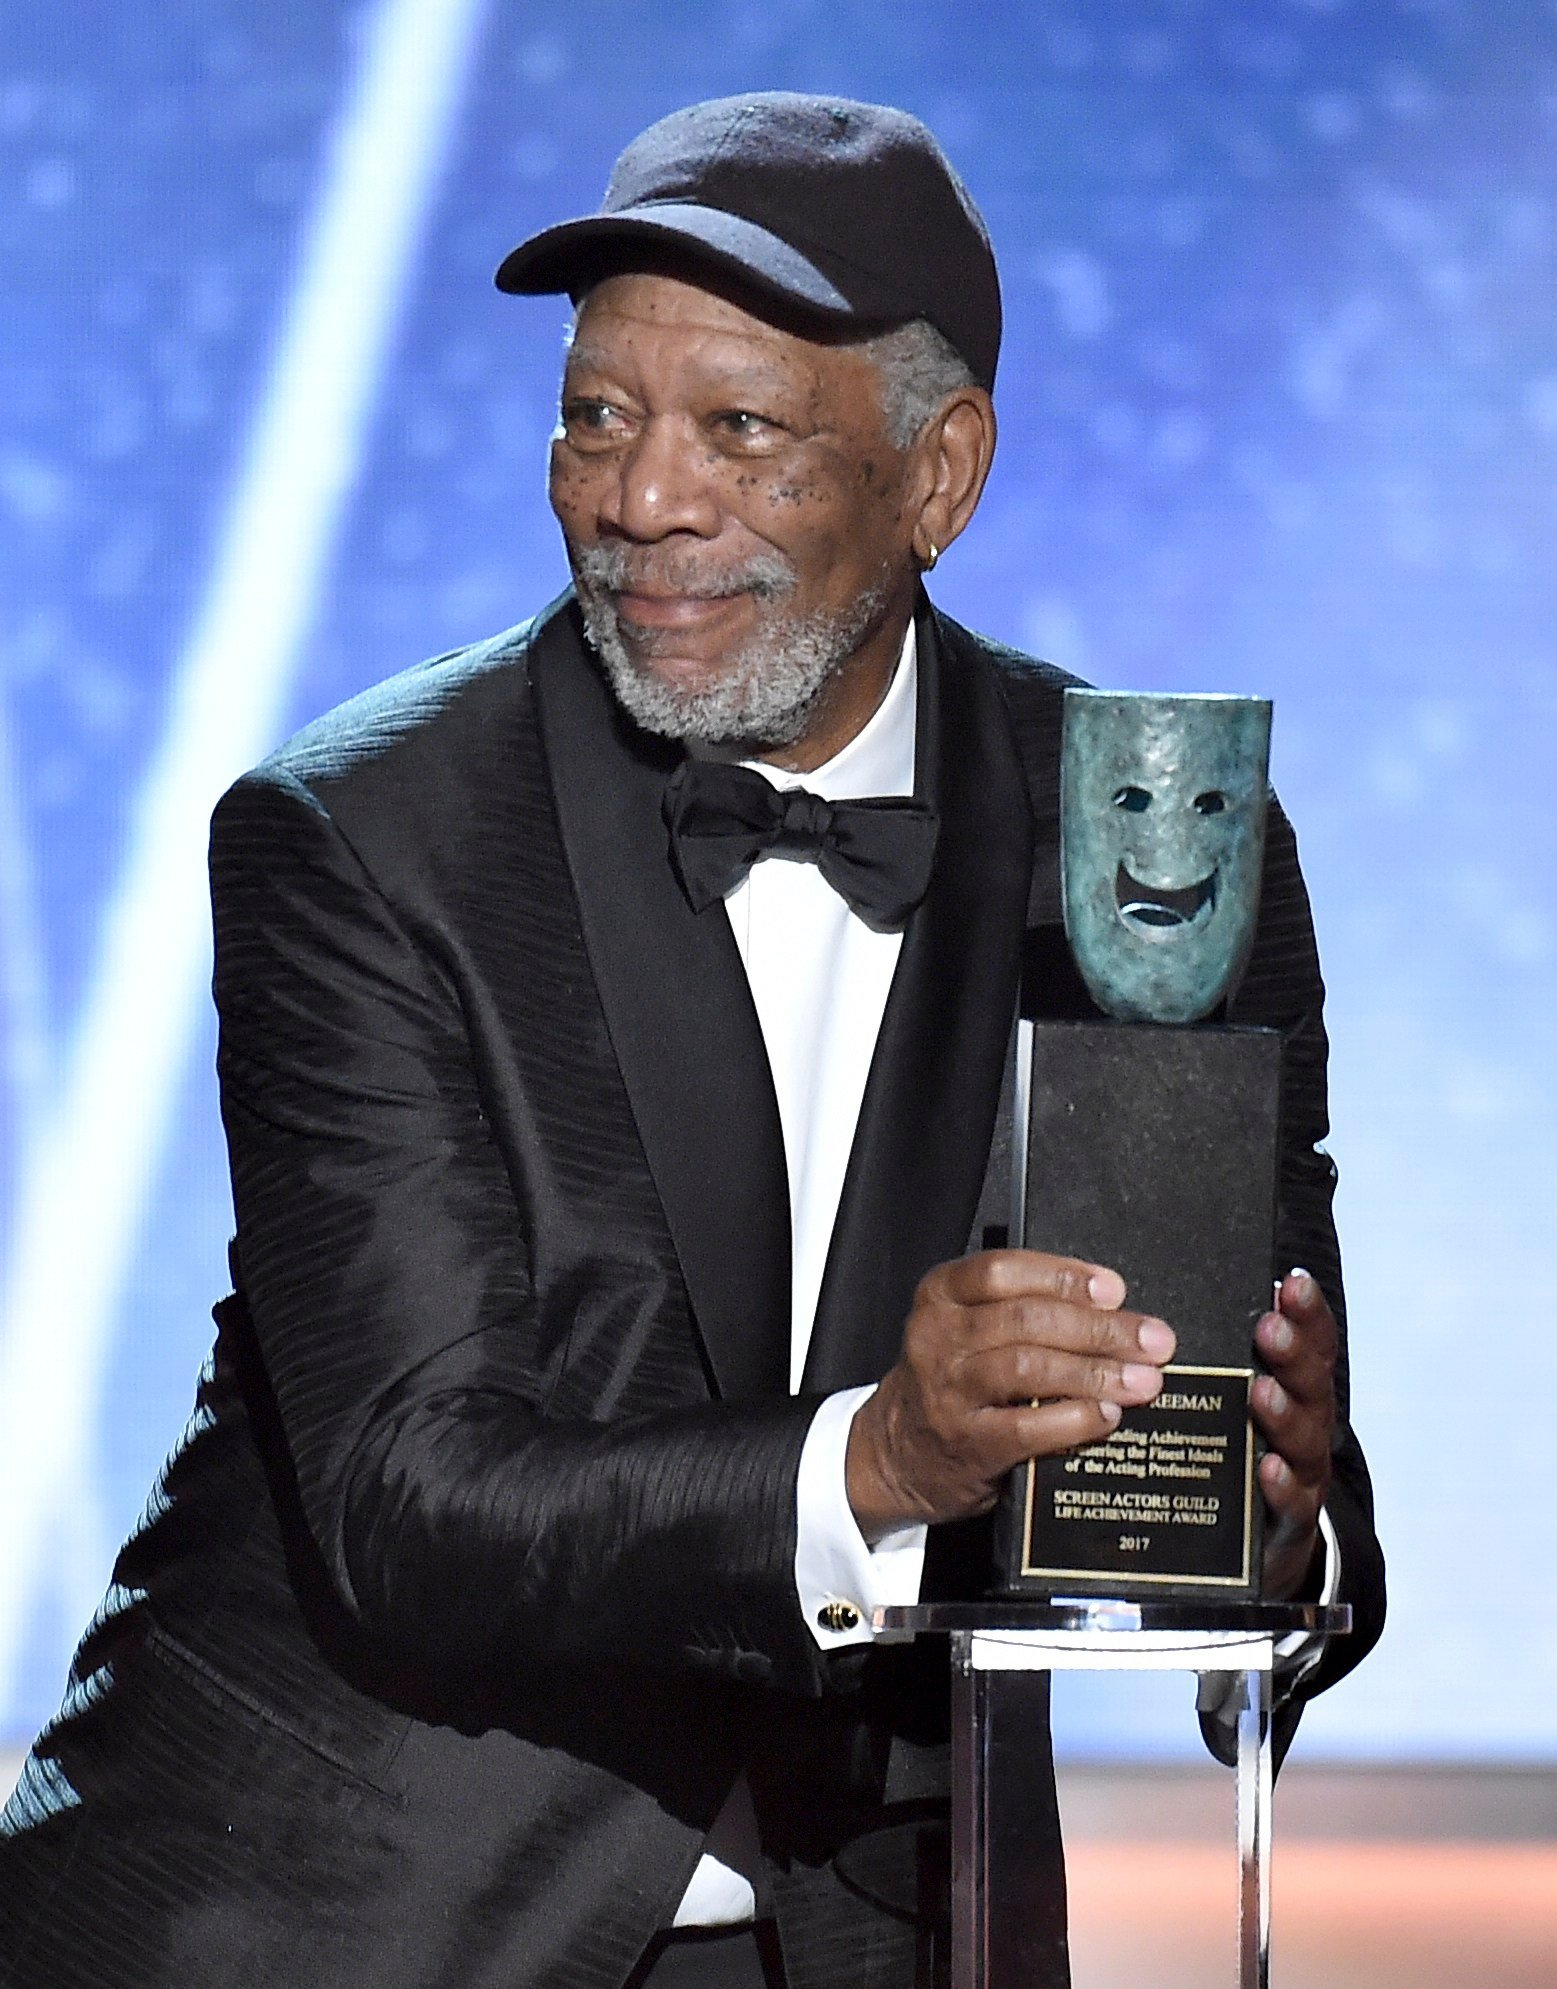 Morgan Freeman accepts the Life Achievement Award at the 24th annual Screen Actors Guild Awards at the Shrine Auditorium & Expo Hall on Sunday, Jan. 21, 2018, in Los Angeles. (Photo by Vince Bucci/Invision/AP)